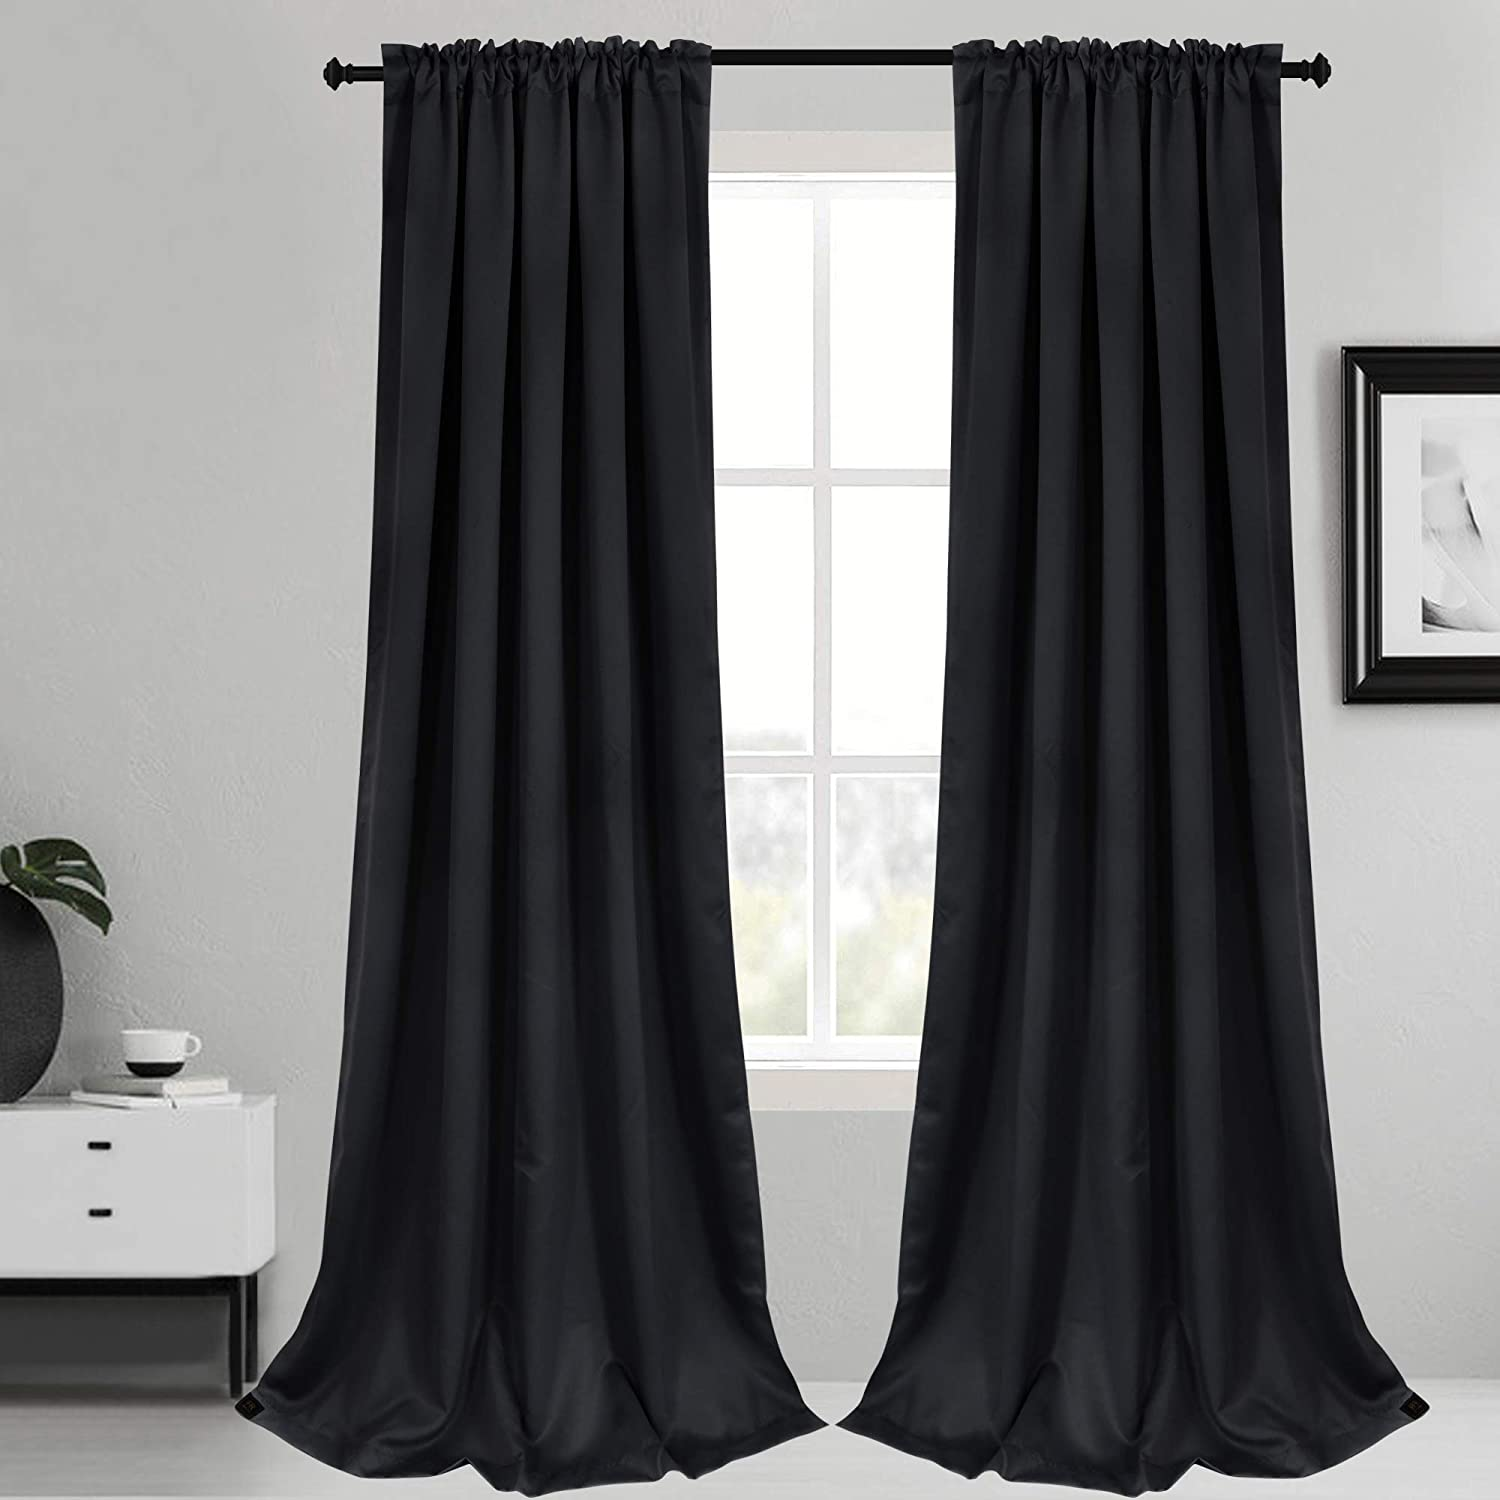 Inherent Flame Retardant Blackout Rod Pocket Curtains Fire Resistant Room Darkening Thermal Insulated Drapes for Bedroom Living Room School Office Nursery Theater Hospital 2 Pack Black 56Wx96L